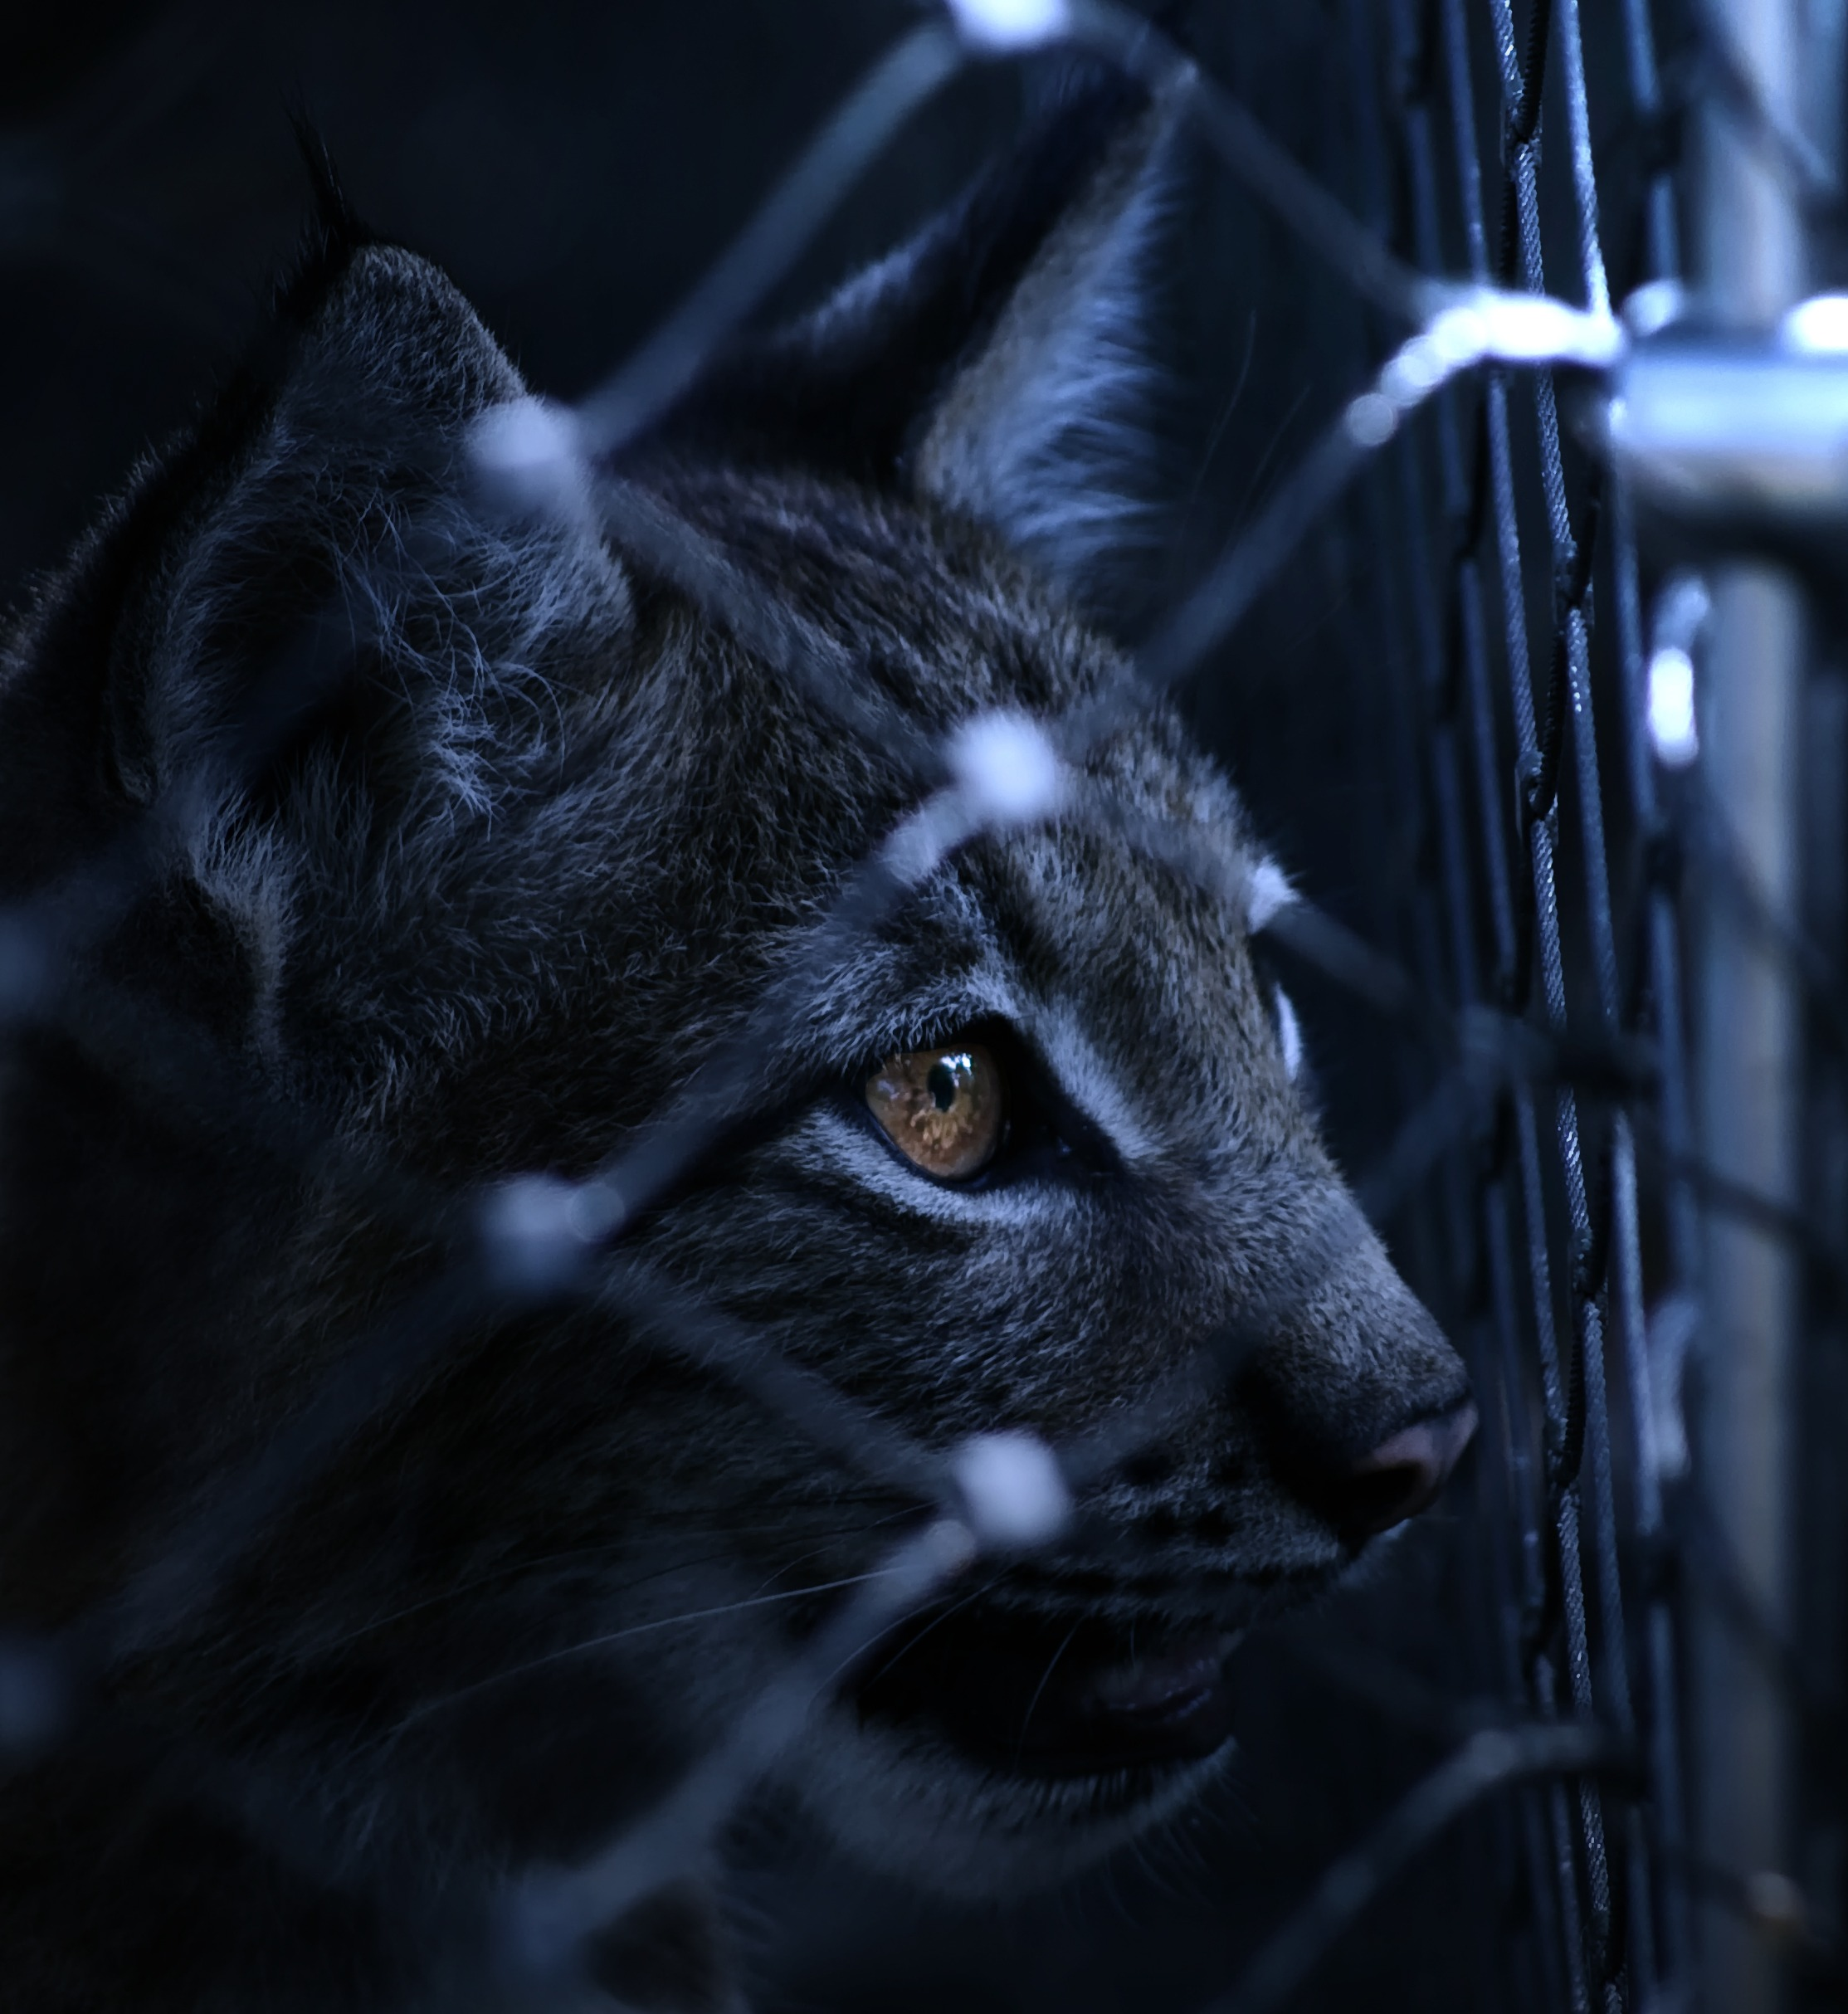 Black Wallpaper 1920x1080 Black Cat On Cyclone Wire Fence 183 Free Stock Photo